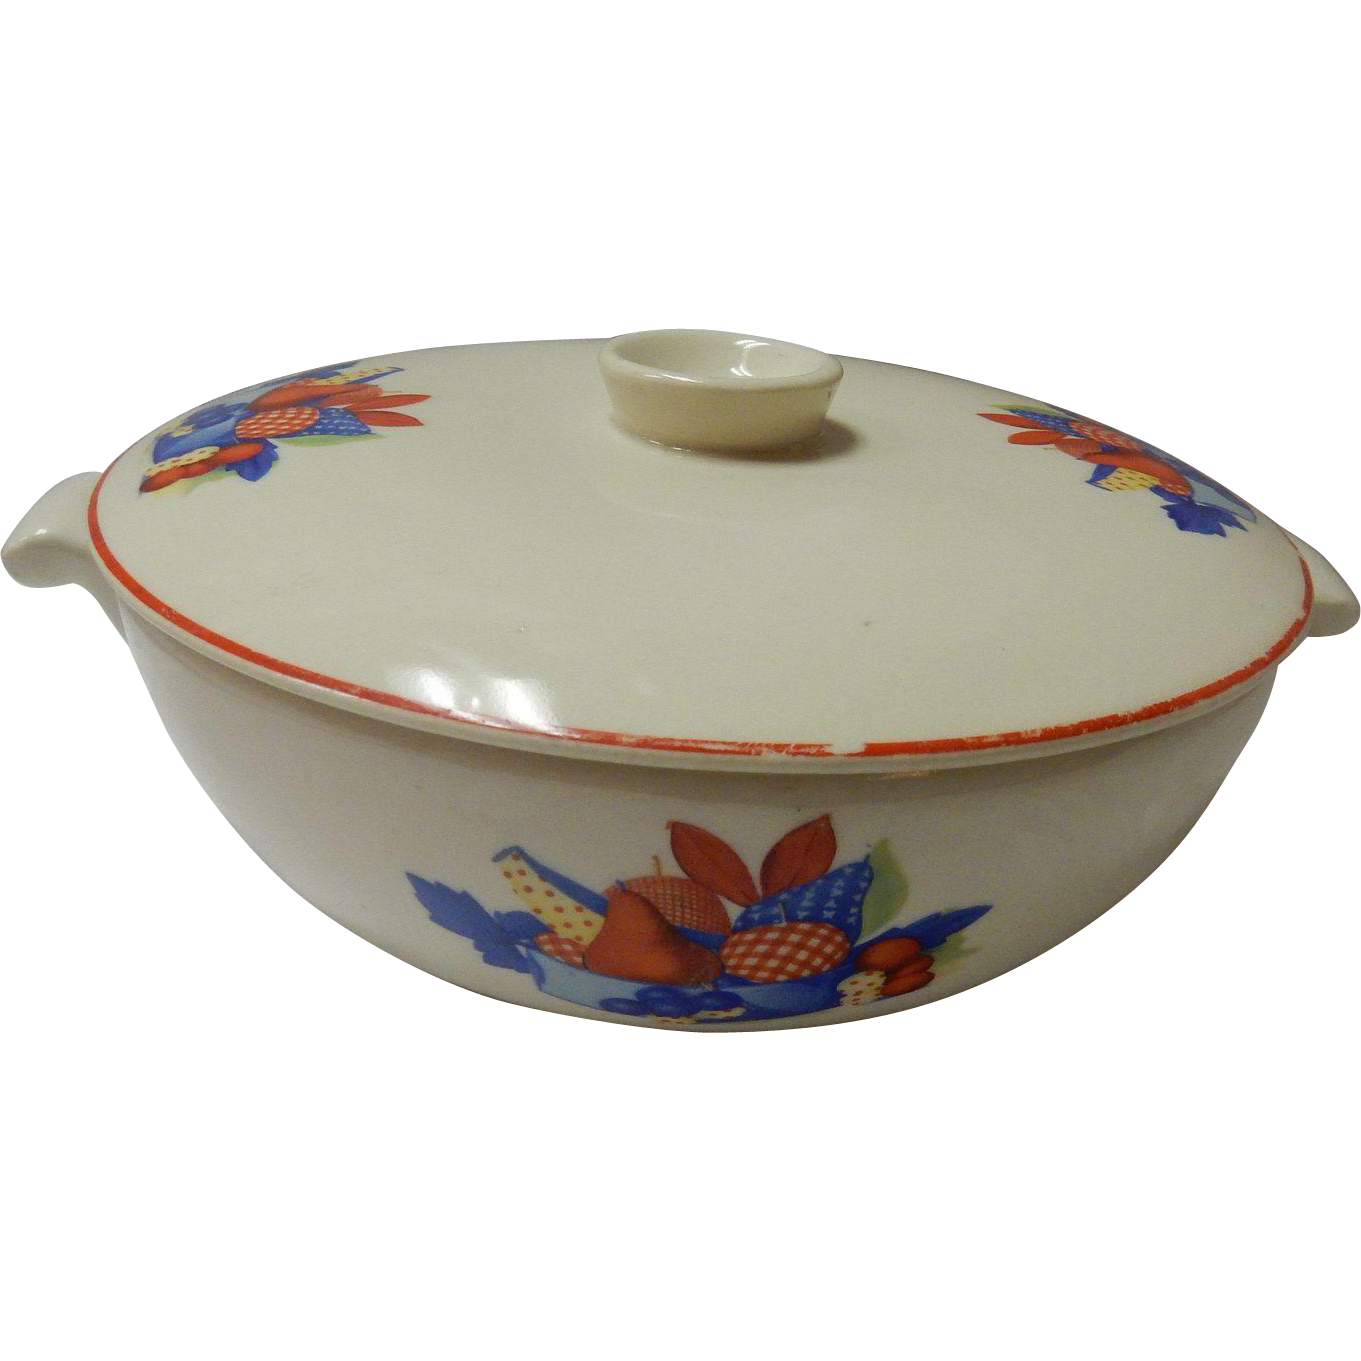 "Calico Fruit 8"" Covered Covered Casserole Dish Universal Cambridge Pottery"